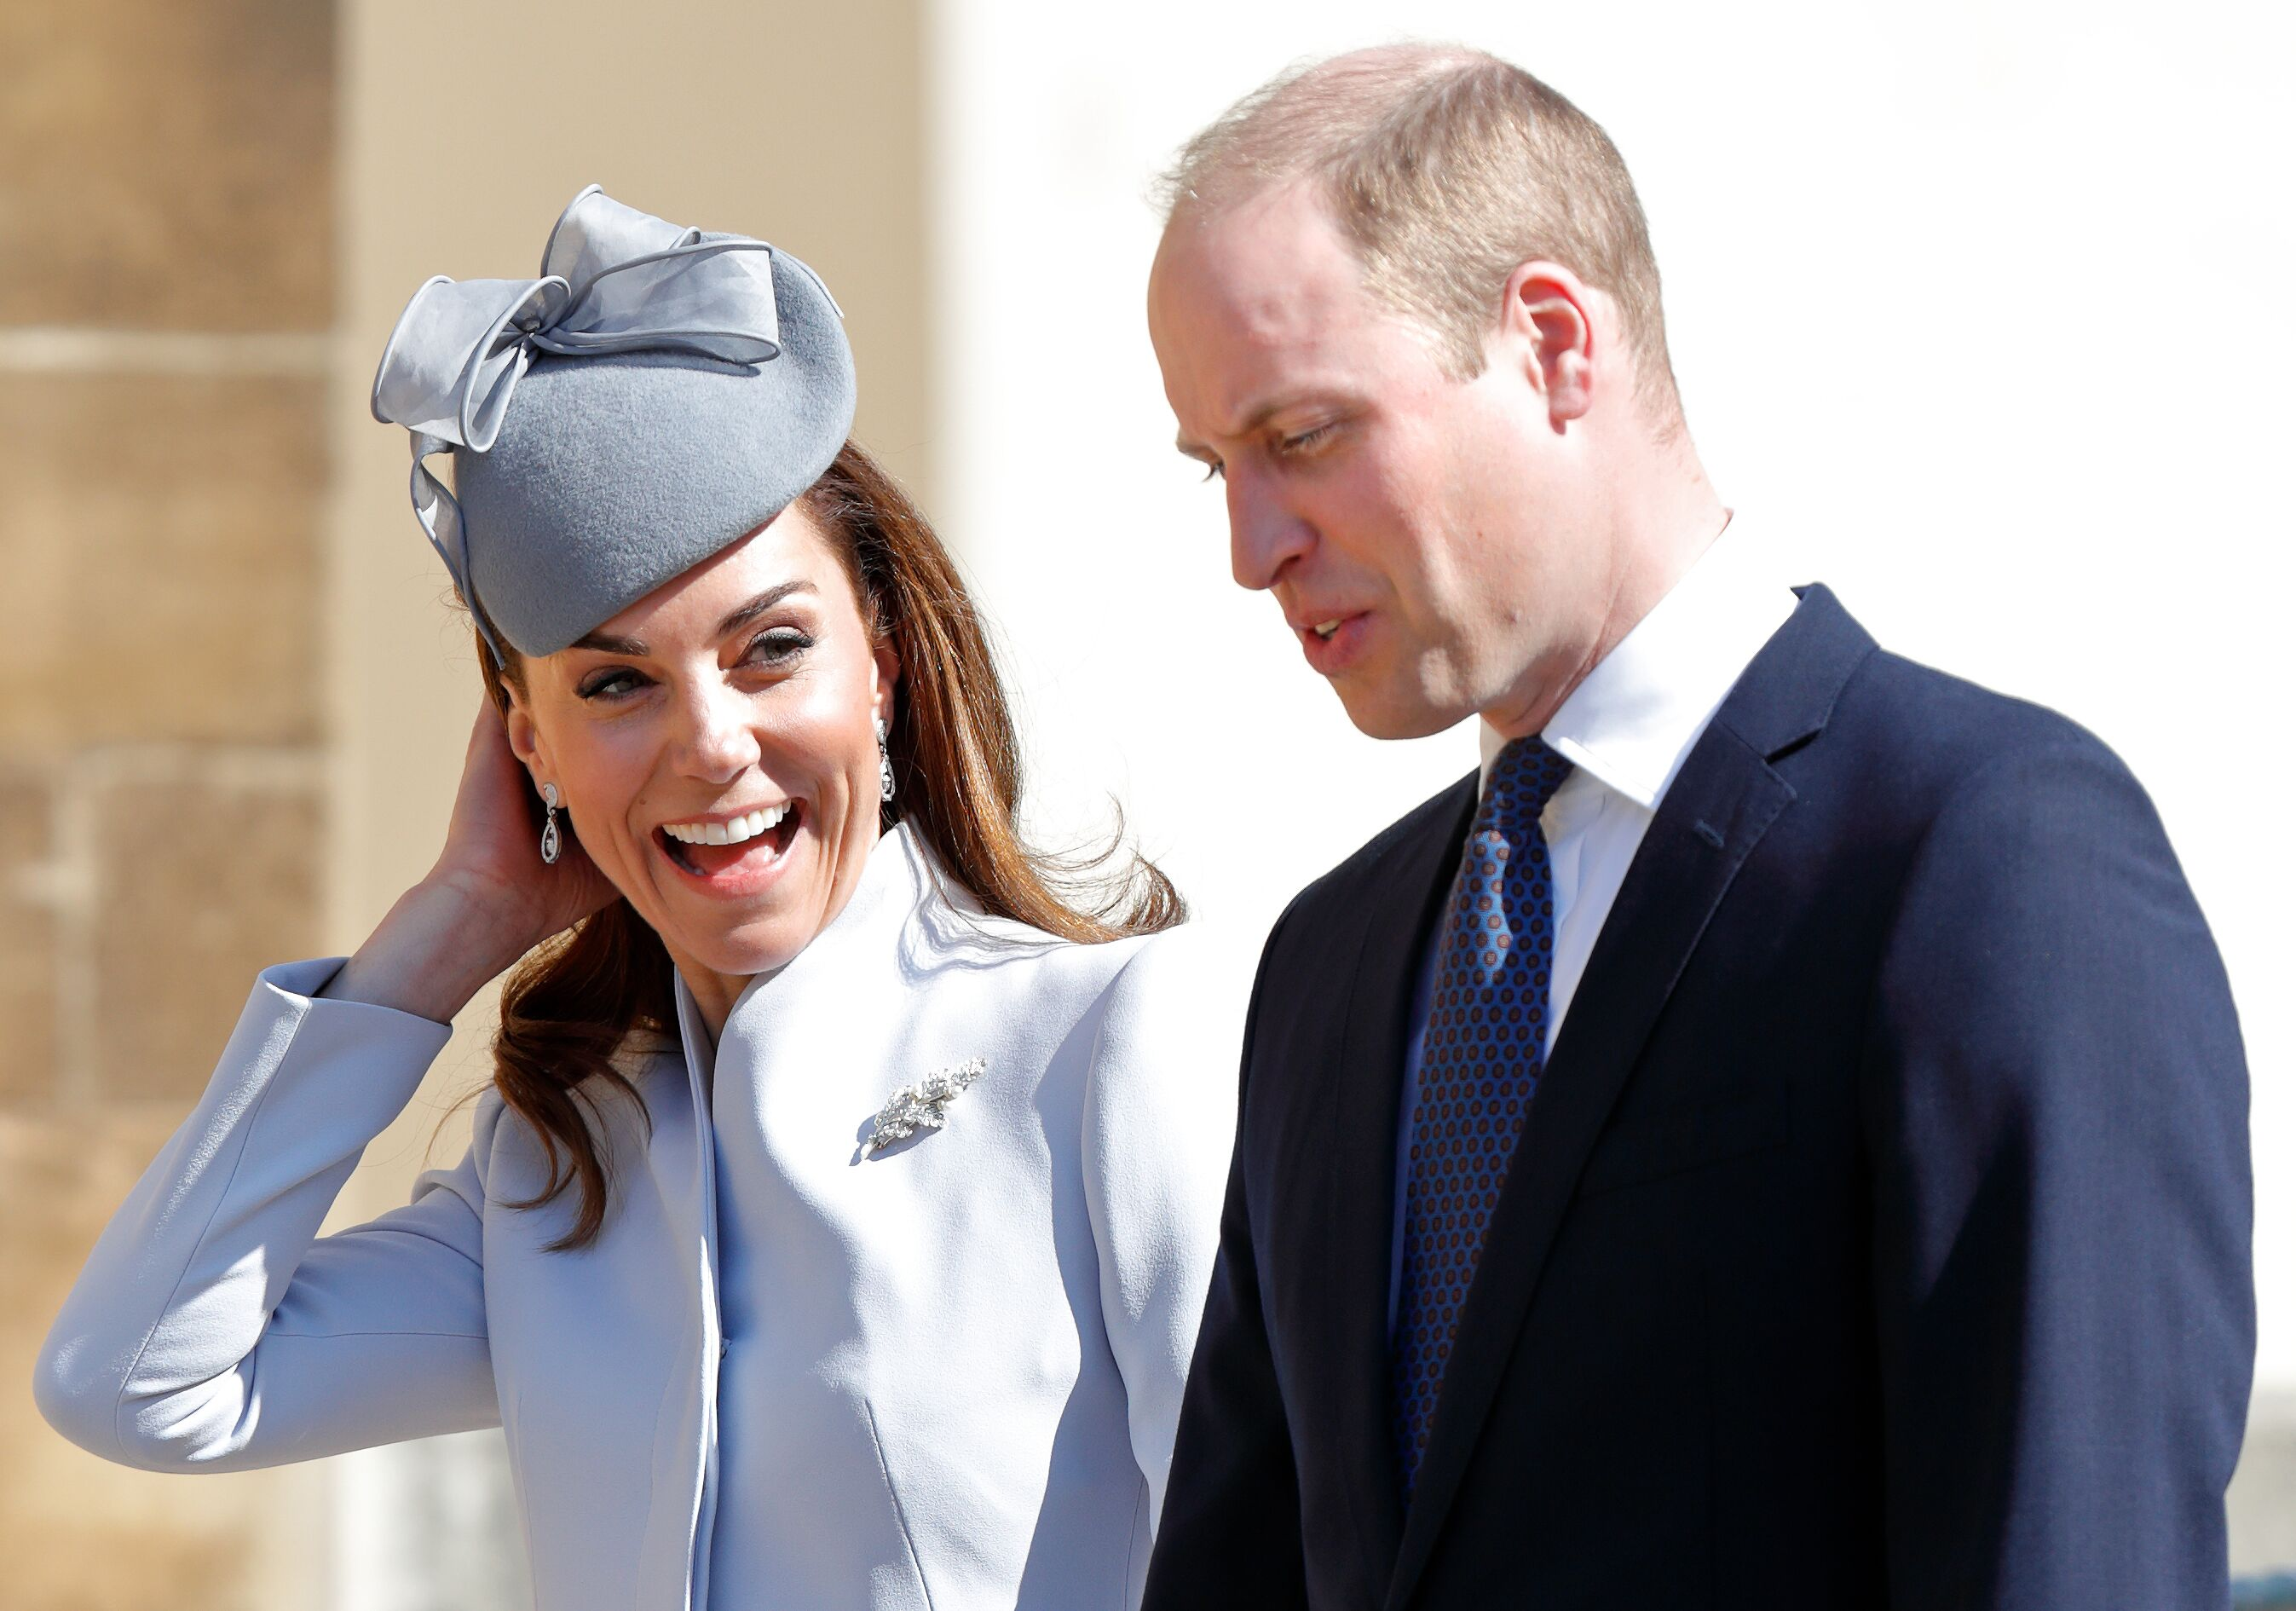 Catherine, Duchess of Cambridge and Prince William, Duke of Cambridge attend the traditional Easter Sunday church service at St George's Chapel, Windsor Castle on April 21, 2019   Photo: Getty Images